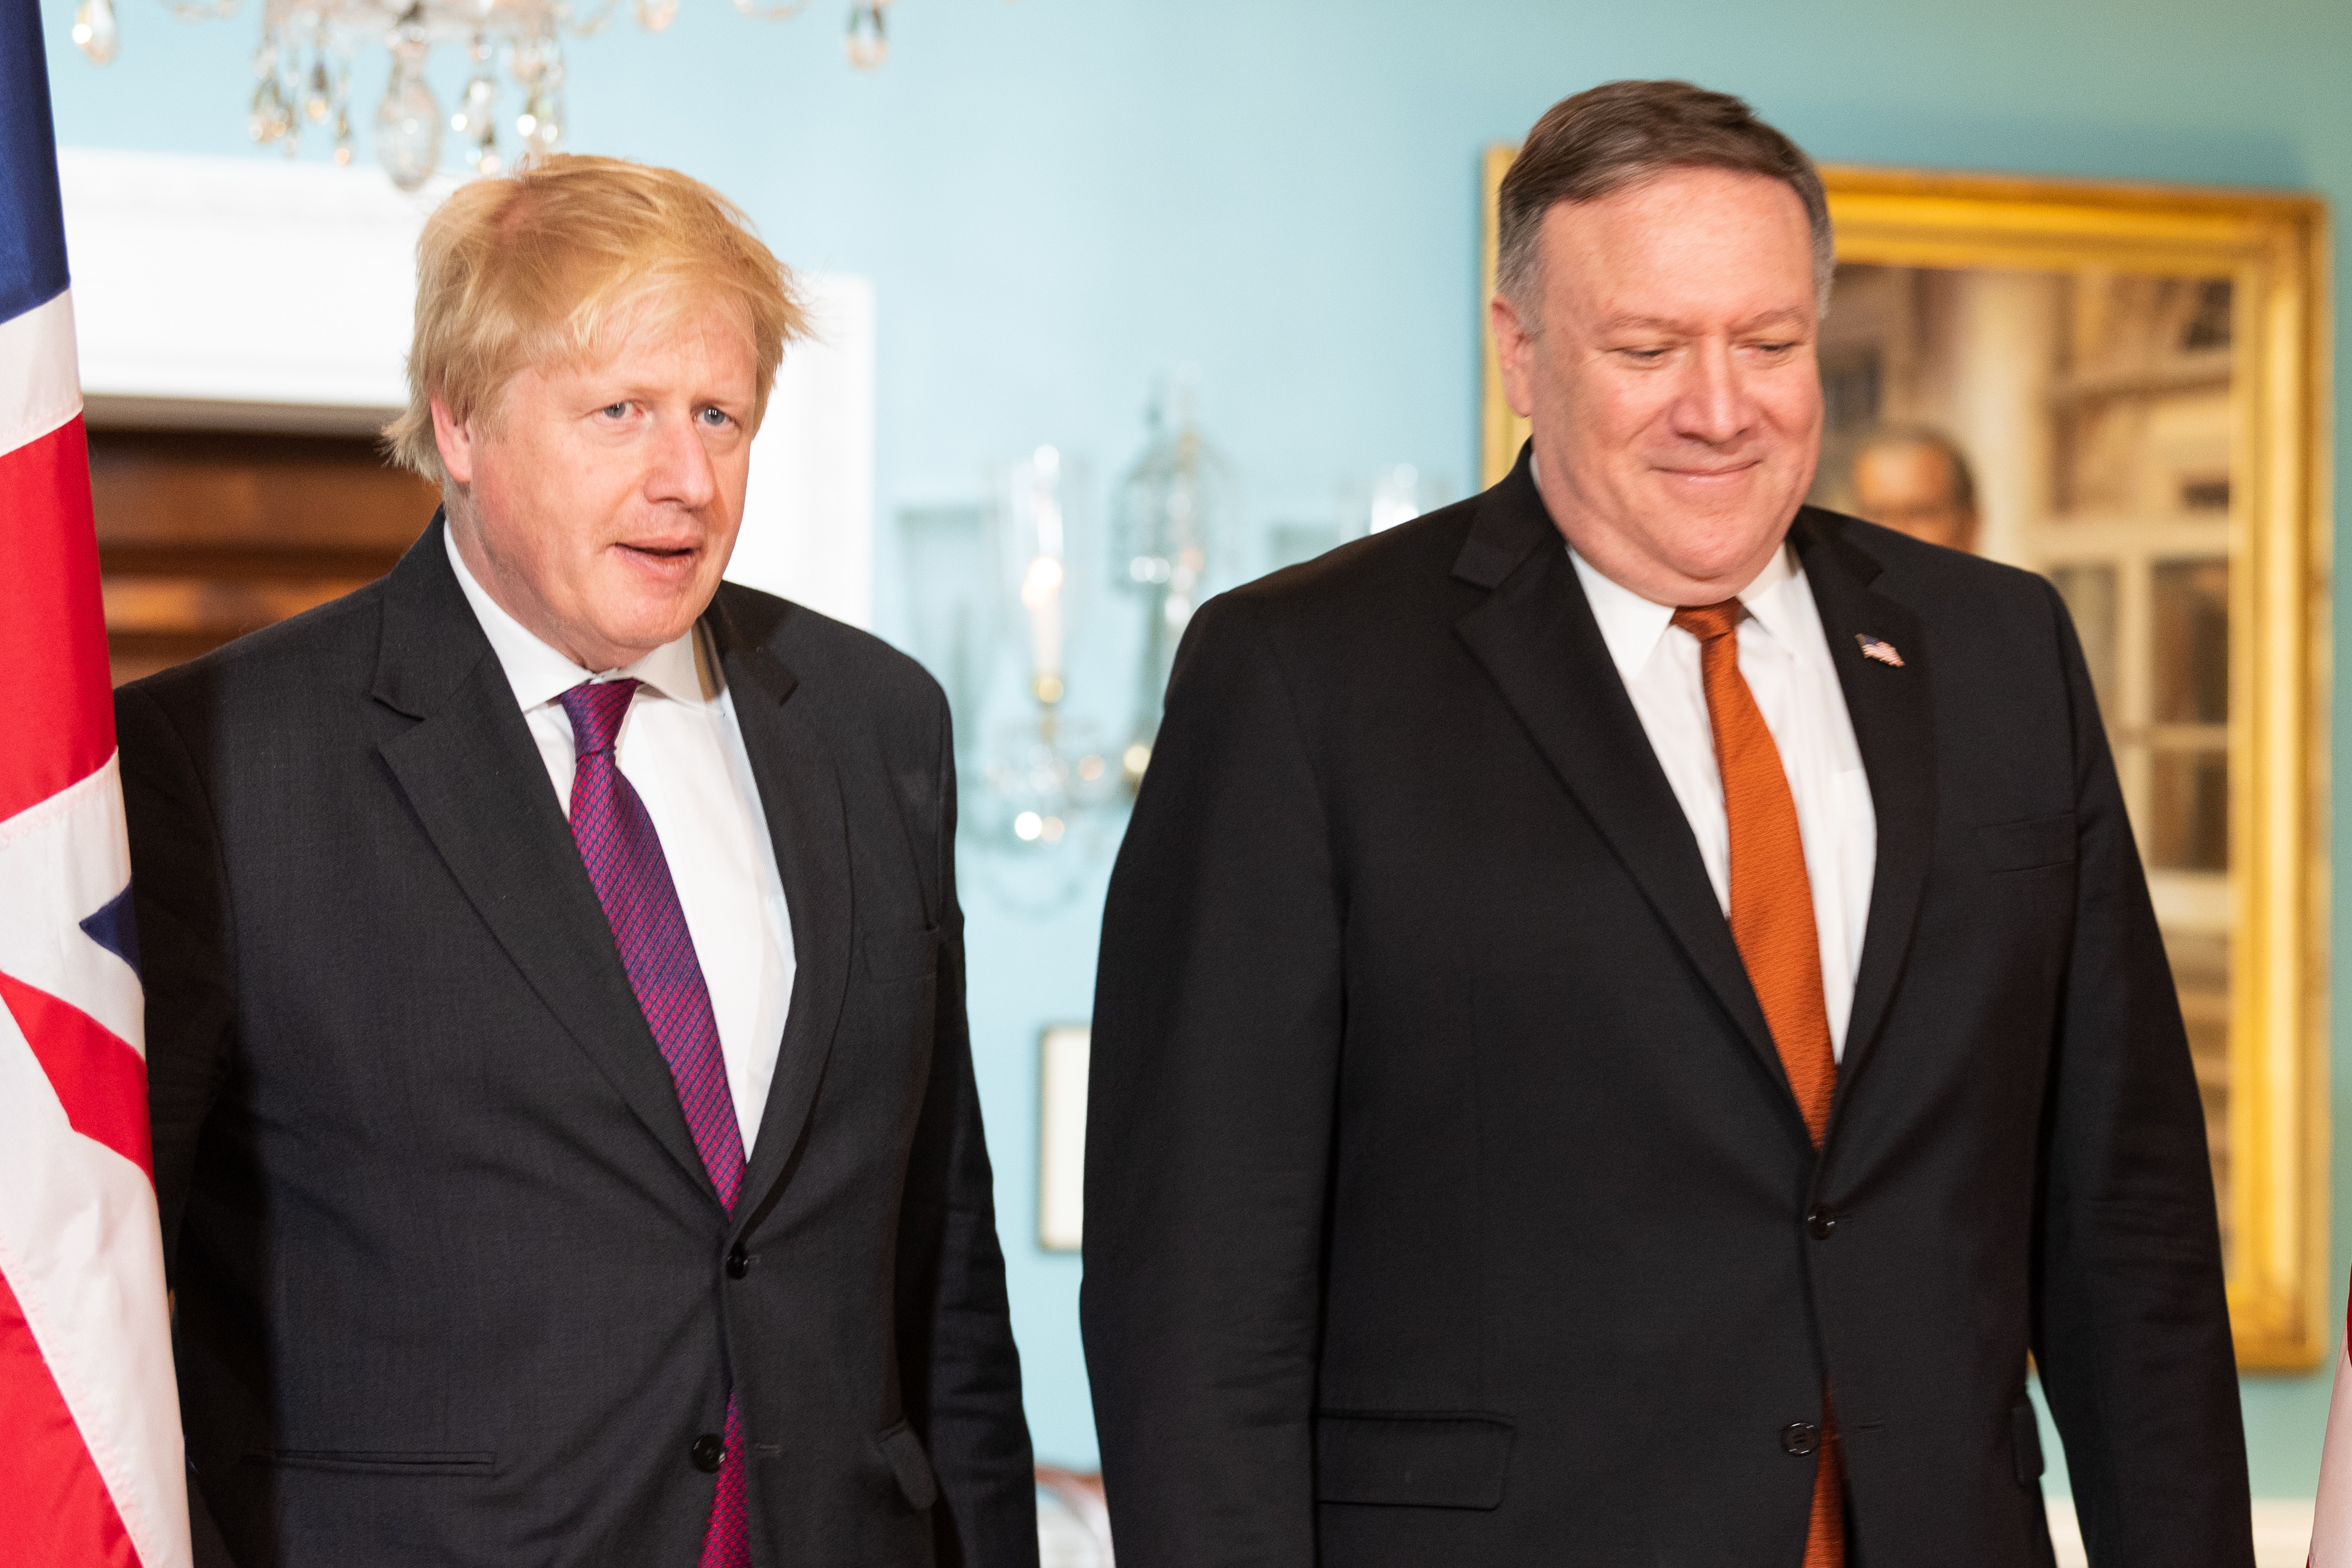 U.S. Secretary of State Mike Pompeo and UK Foreign Secretary Boris Johnson at the State Department in Washington, DC on May 7, 2018 (Photo by Michael Brochstein/Sipa USA)